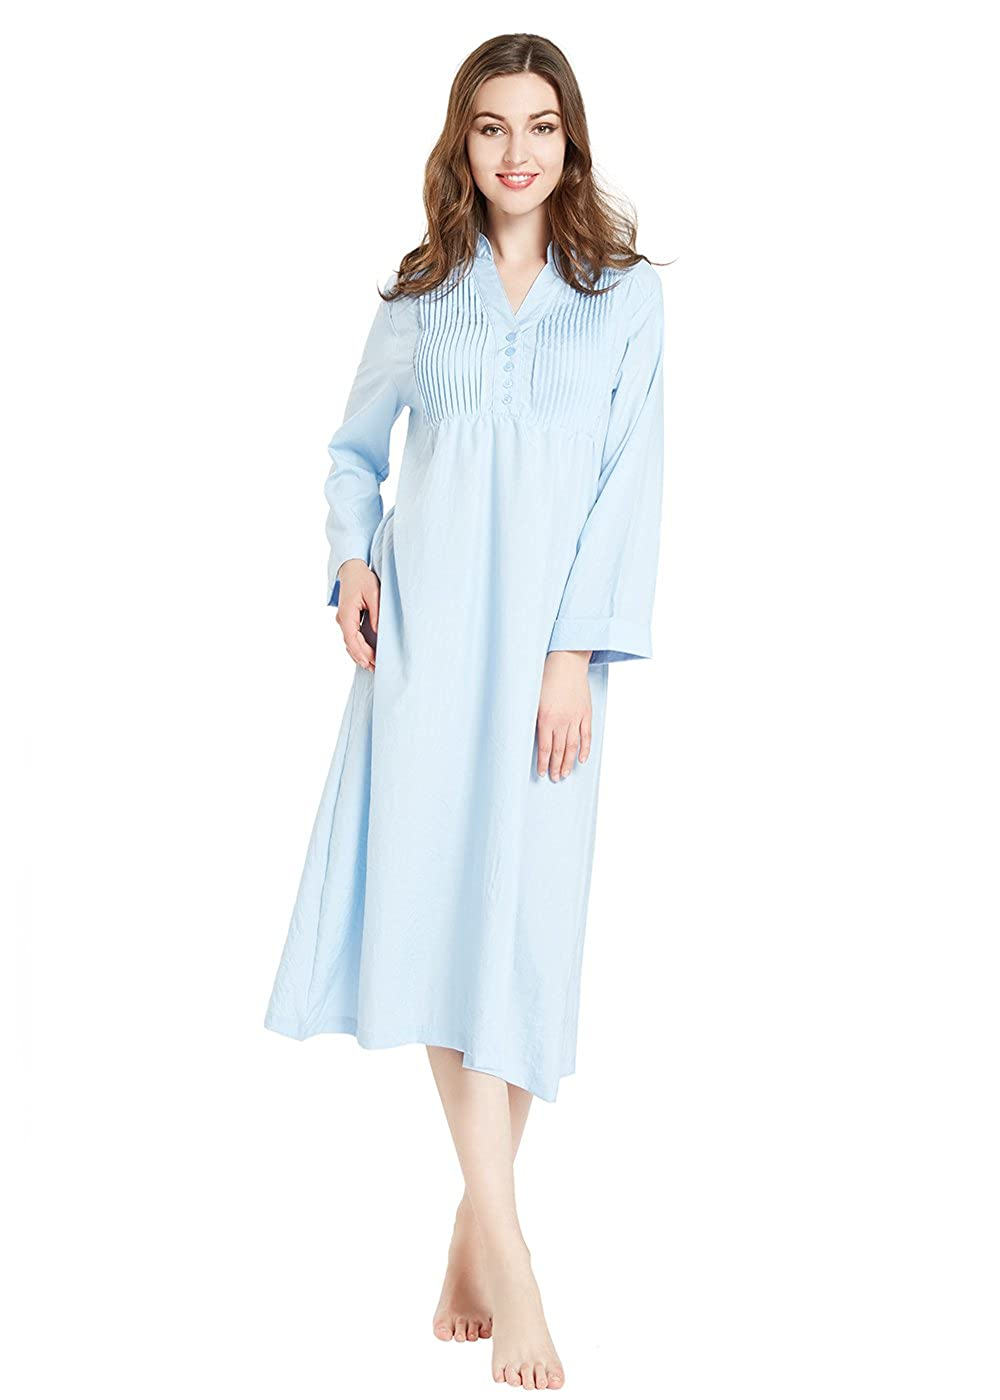 lantisan Cotton Knit Long Sleeve Nightgown for Women, Henley Full Length Sleep Dress TB002